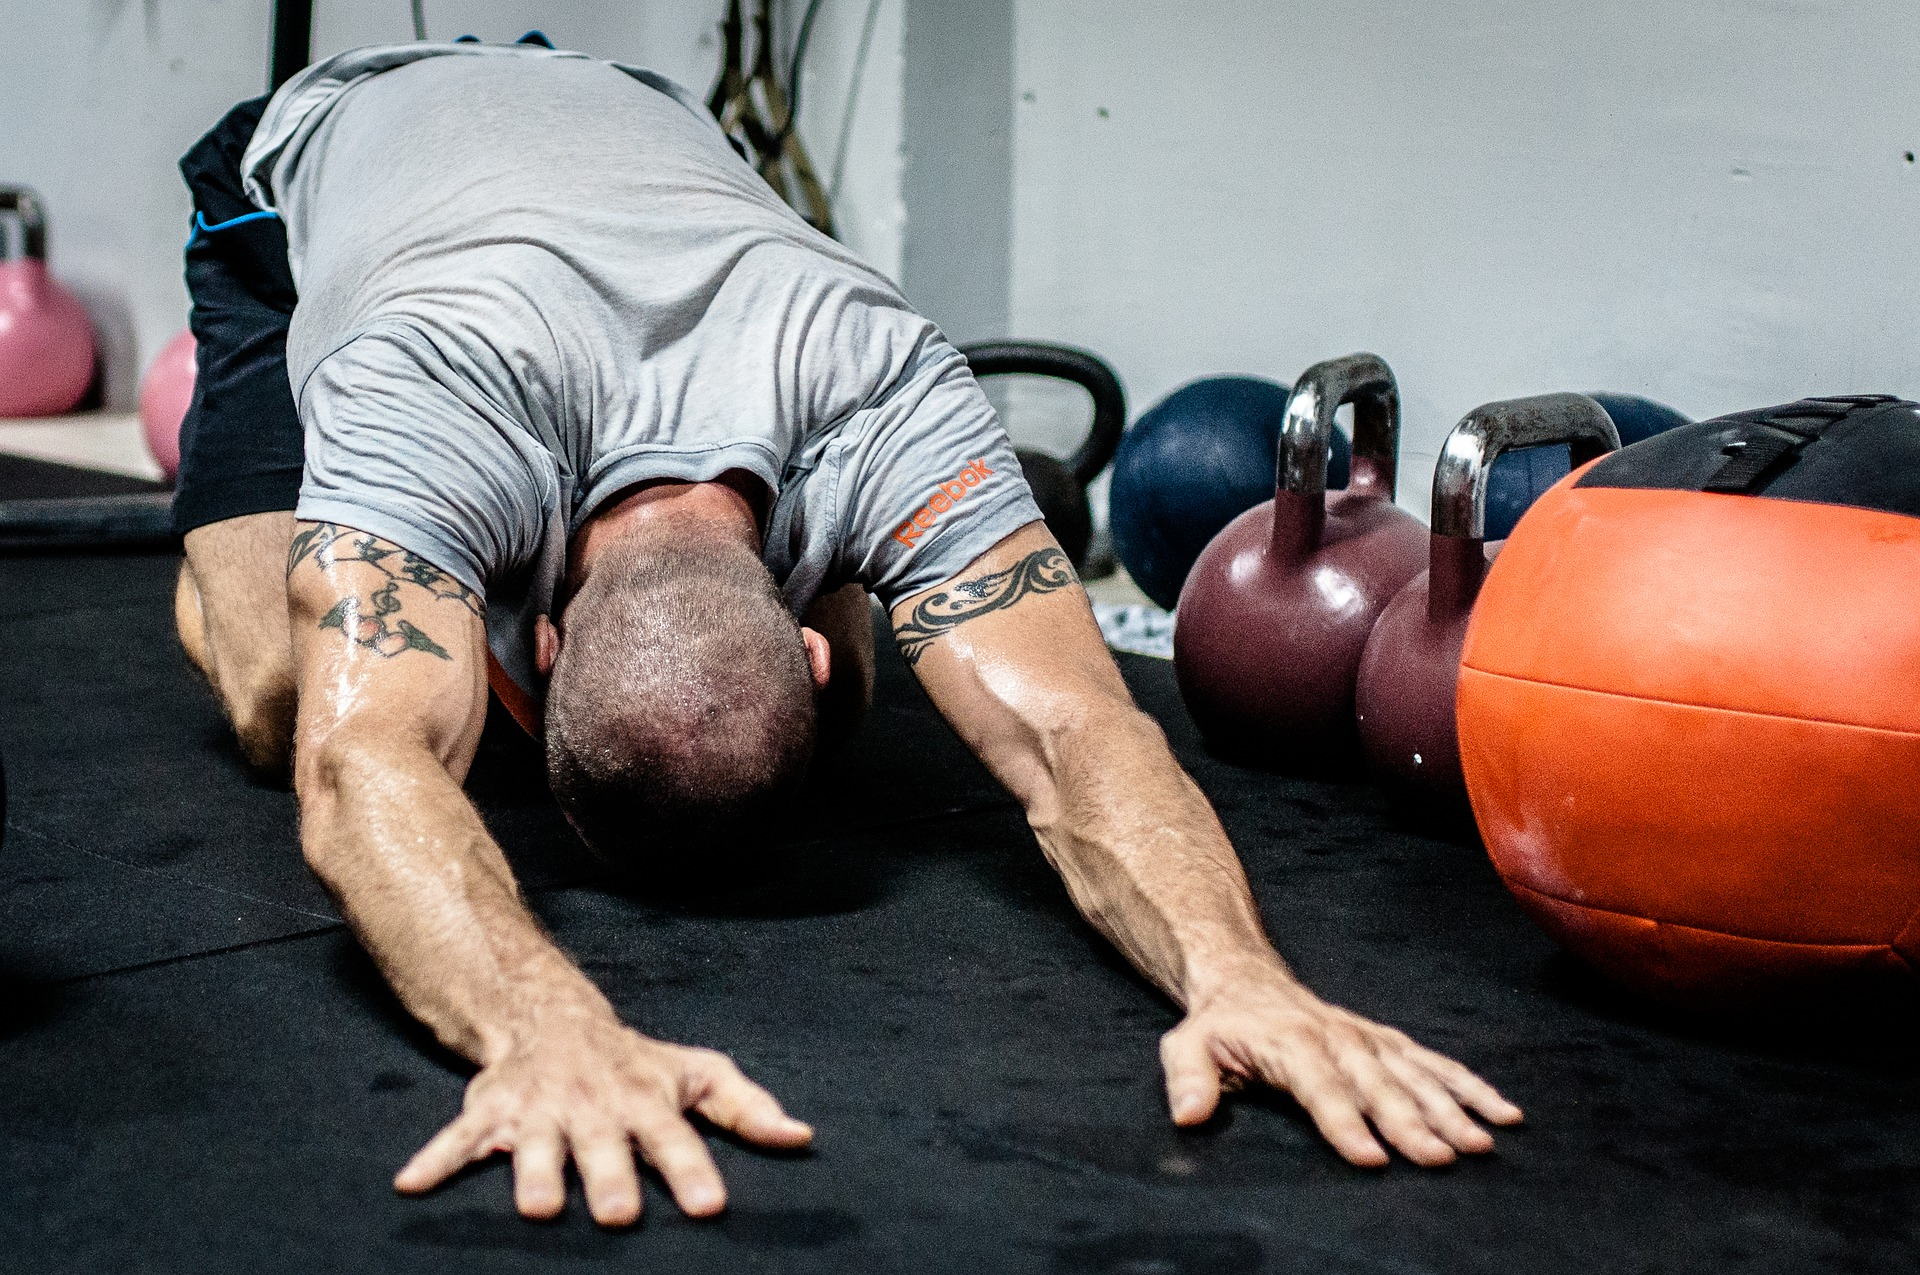 Man doing one of the CrossFit Stretches on the box floor next to kettlebells